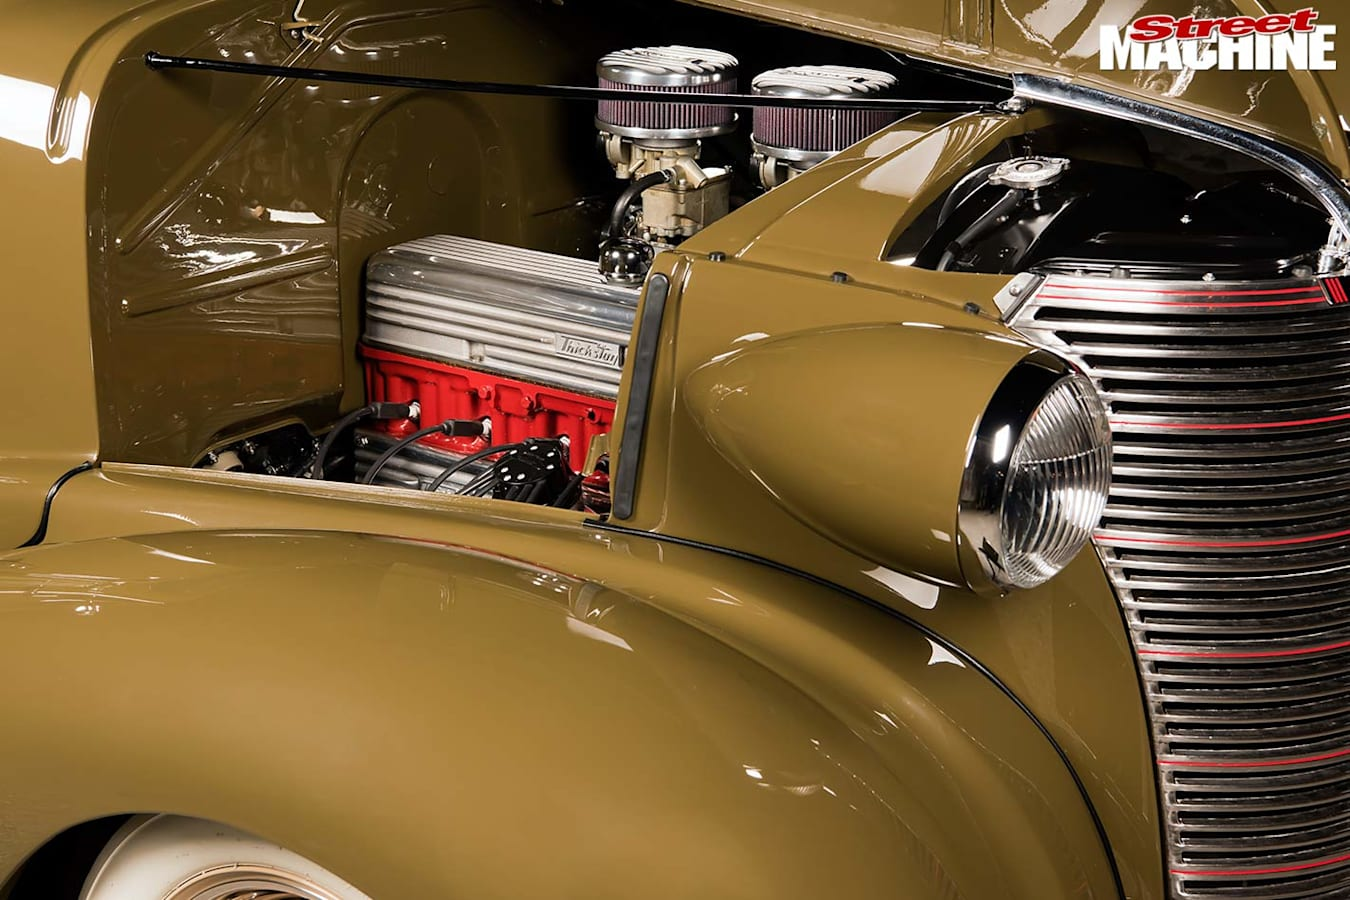 Chevrolet coupe engine bay